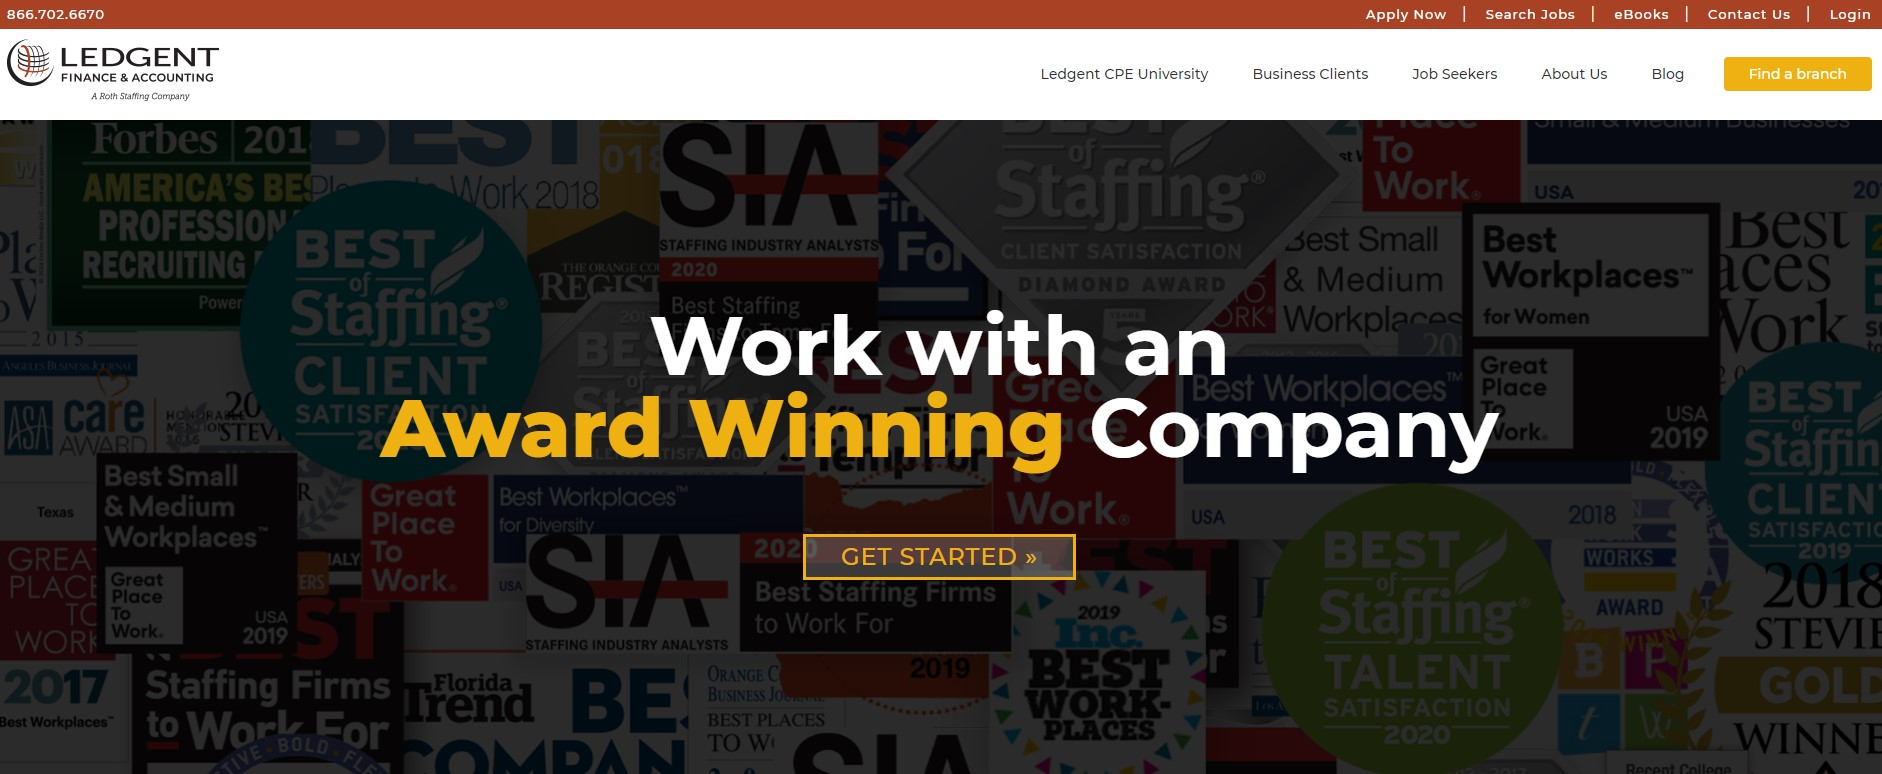 Ledgent Finance & Accounting - Best San Diego Staffing Agency